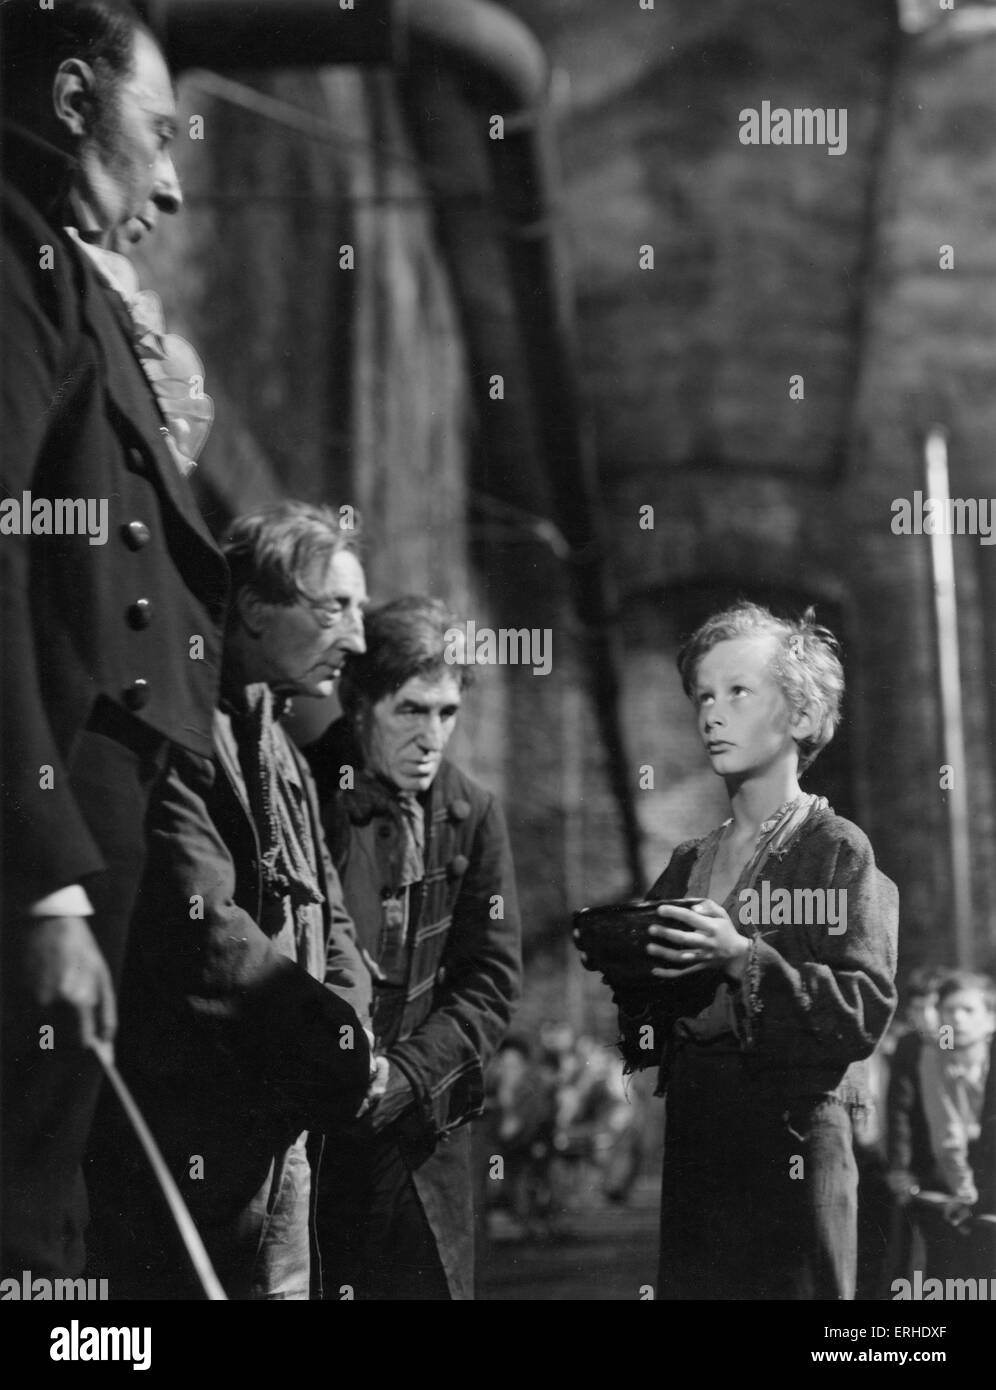 Oliver Twist. film still from 1948 Rank Film production of Charles Dickens  Oliver asks for more. British novelist, - Stock Image